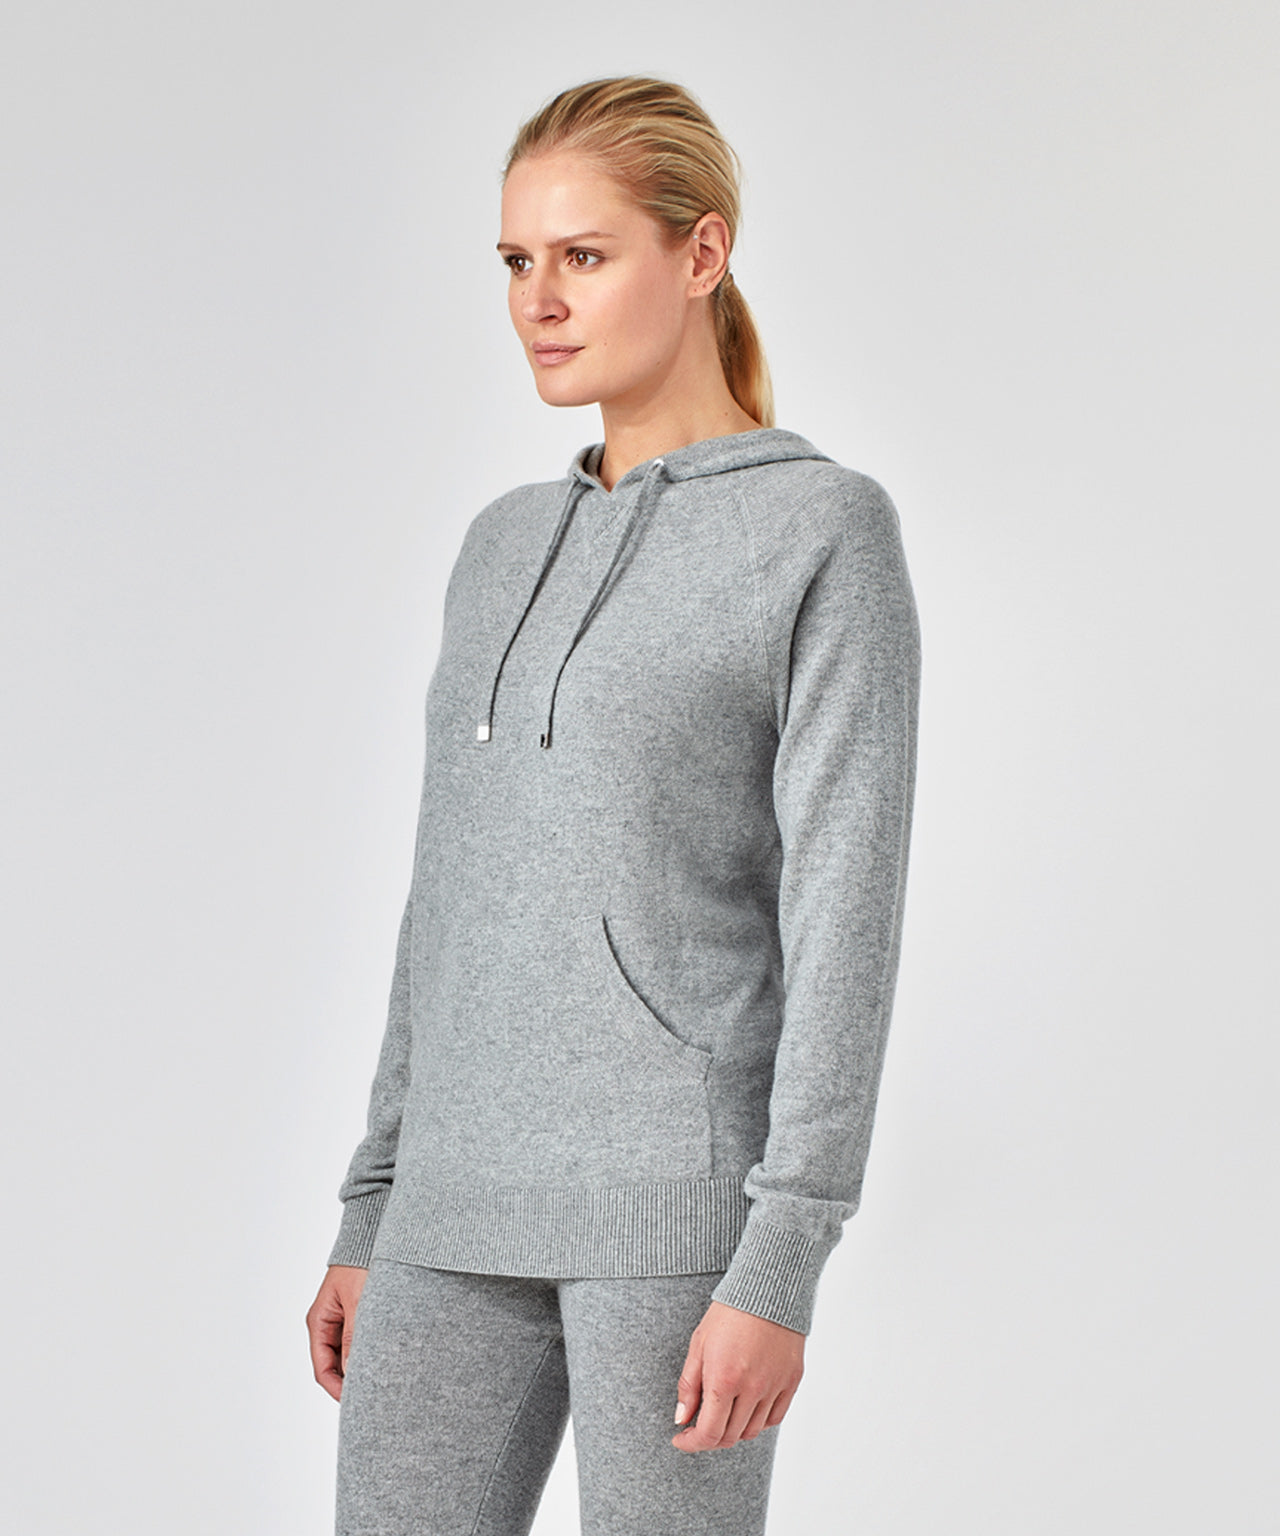 Cashmere Hoodie His For Her - grey melange